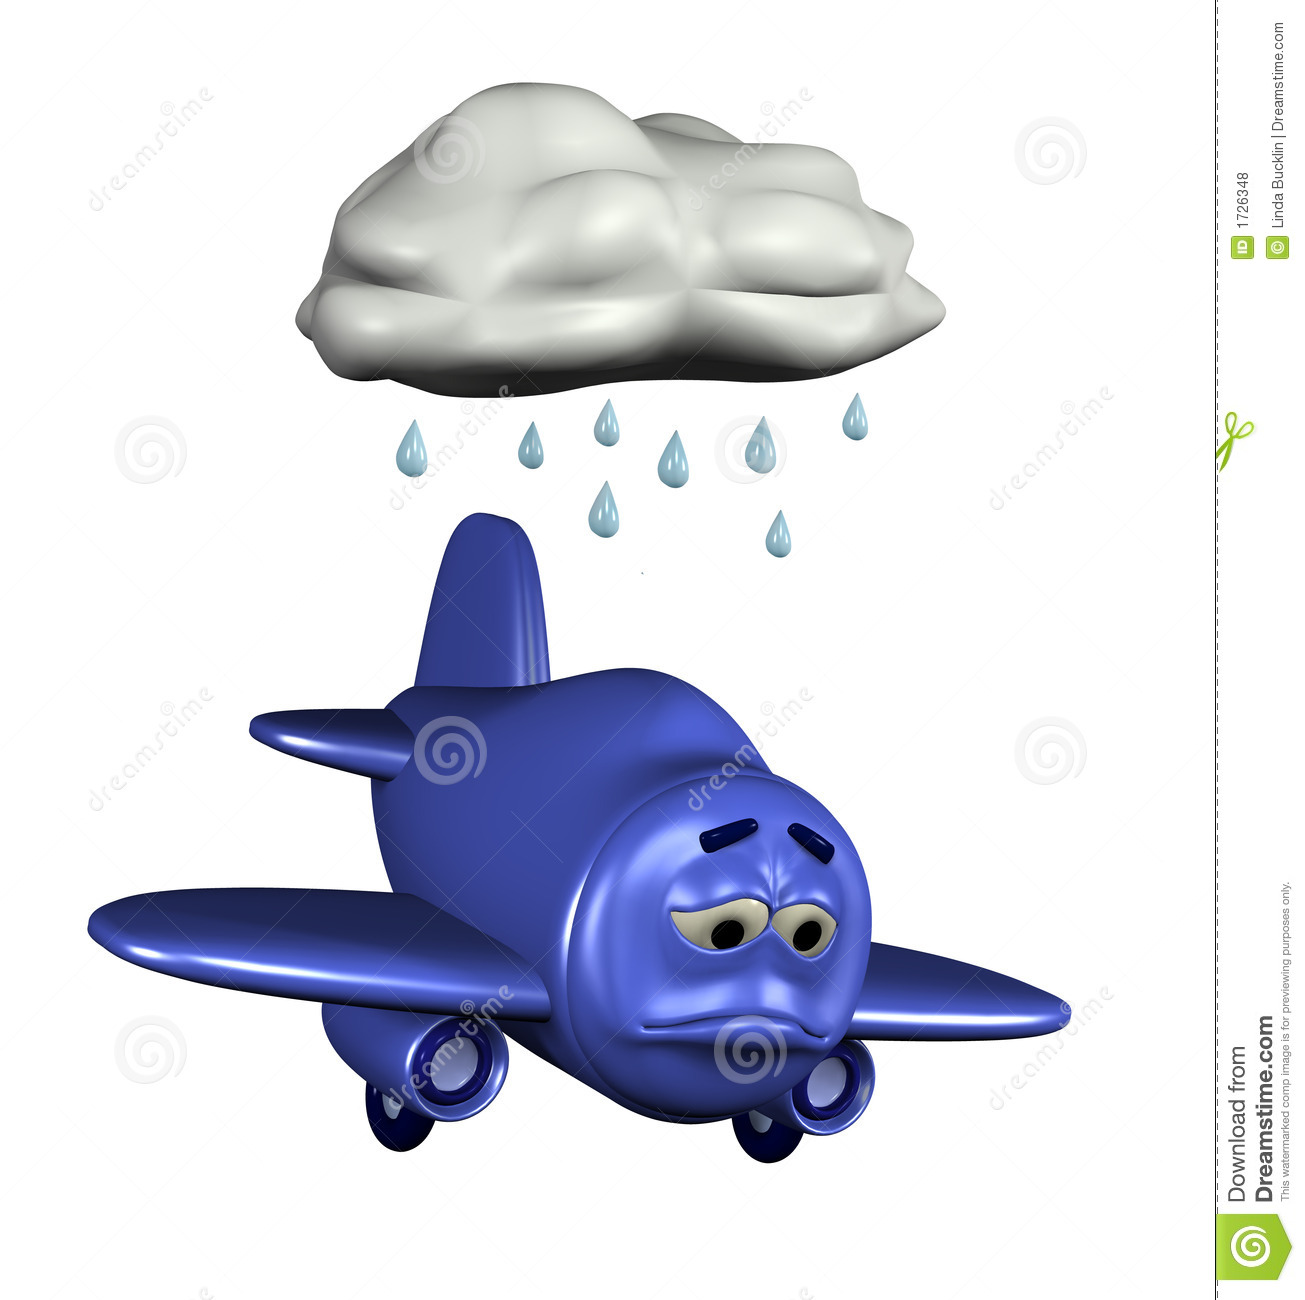 emoticon of plane with Fotografie Stock Libere Da Diritti Aereo Triste Del Emoticon Image1726348 on Fotografie Stock Libere Da Diritti Aereo Triste Del Emoticon Image1726348 additionally Marezilla besides 8414 furthermore Bandera De Canada furthermore Smilisar.